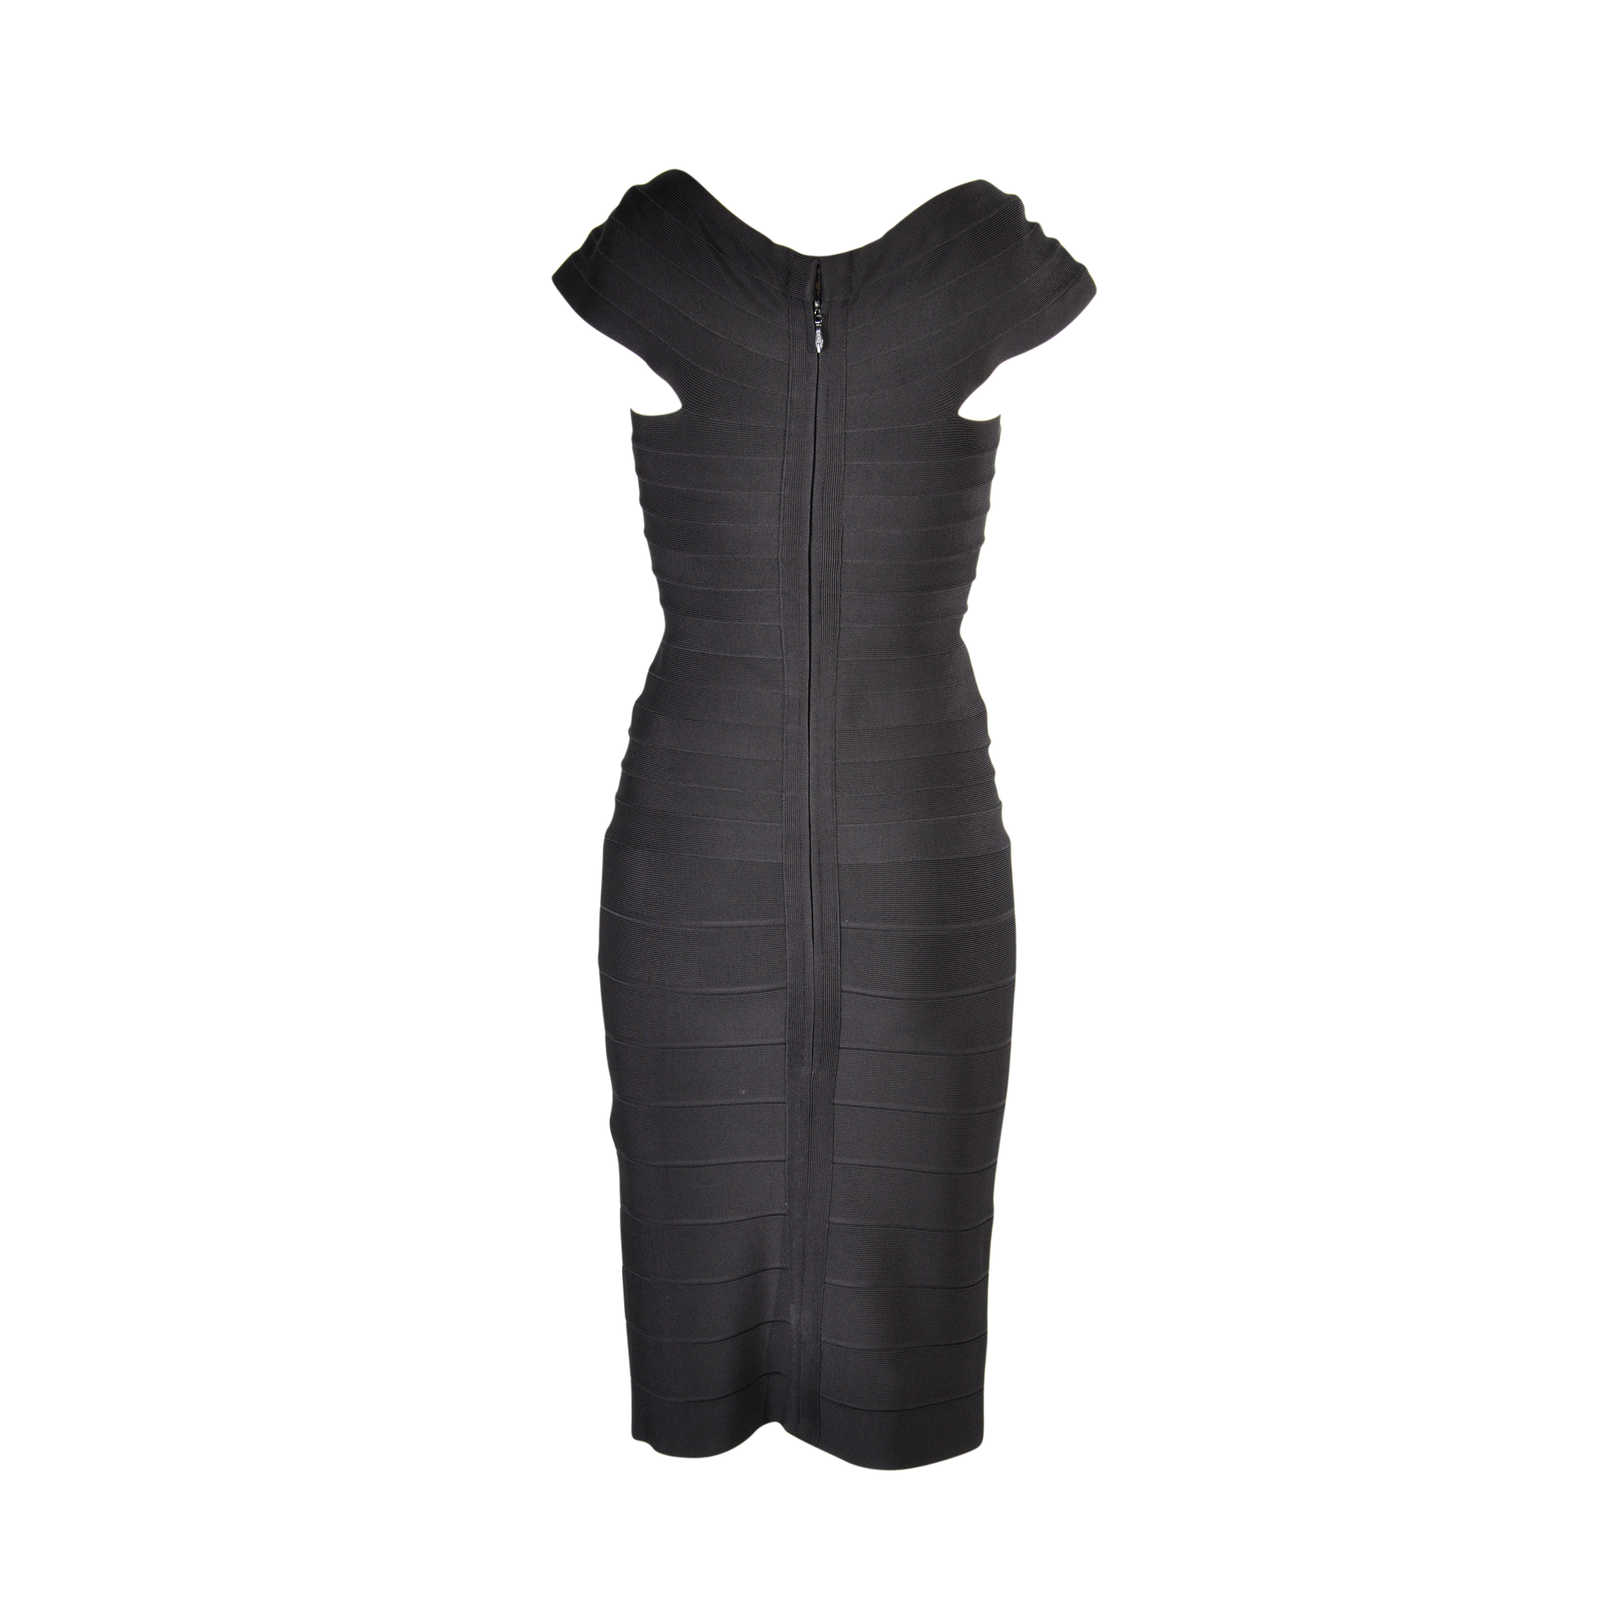 d25cc14d74116 ... Authentic Second Hand Hervé Leger Black Sheath Bandage Dress  (PSS-077-00003) ...